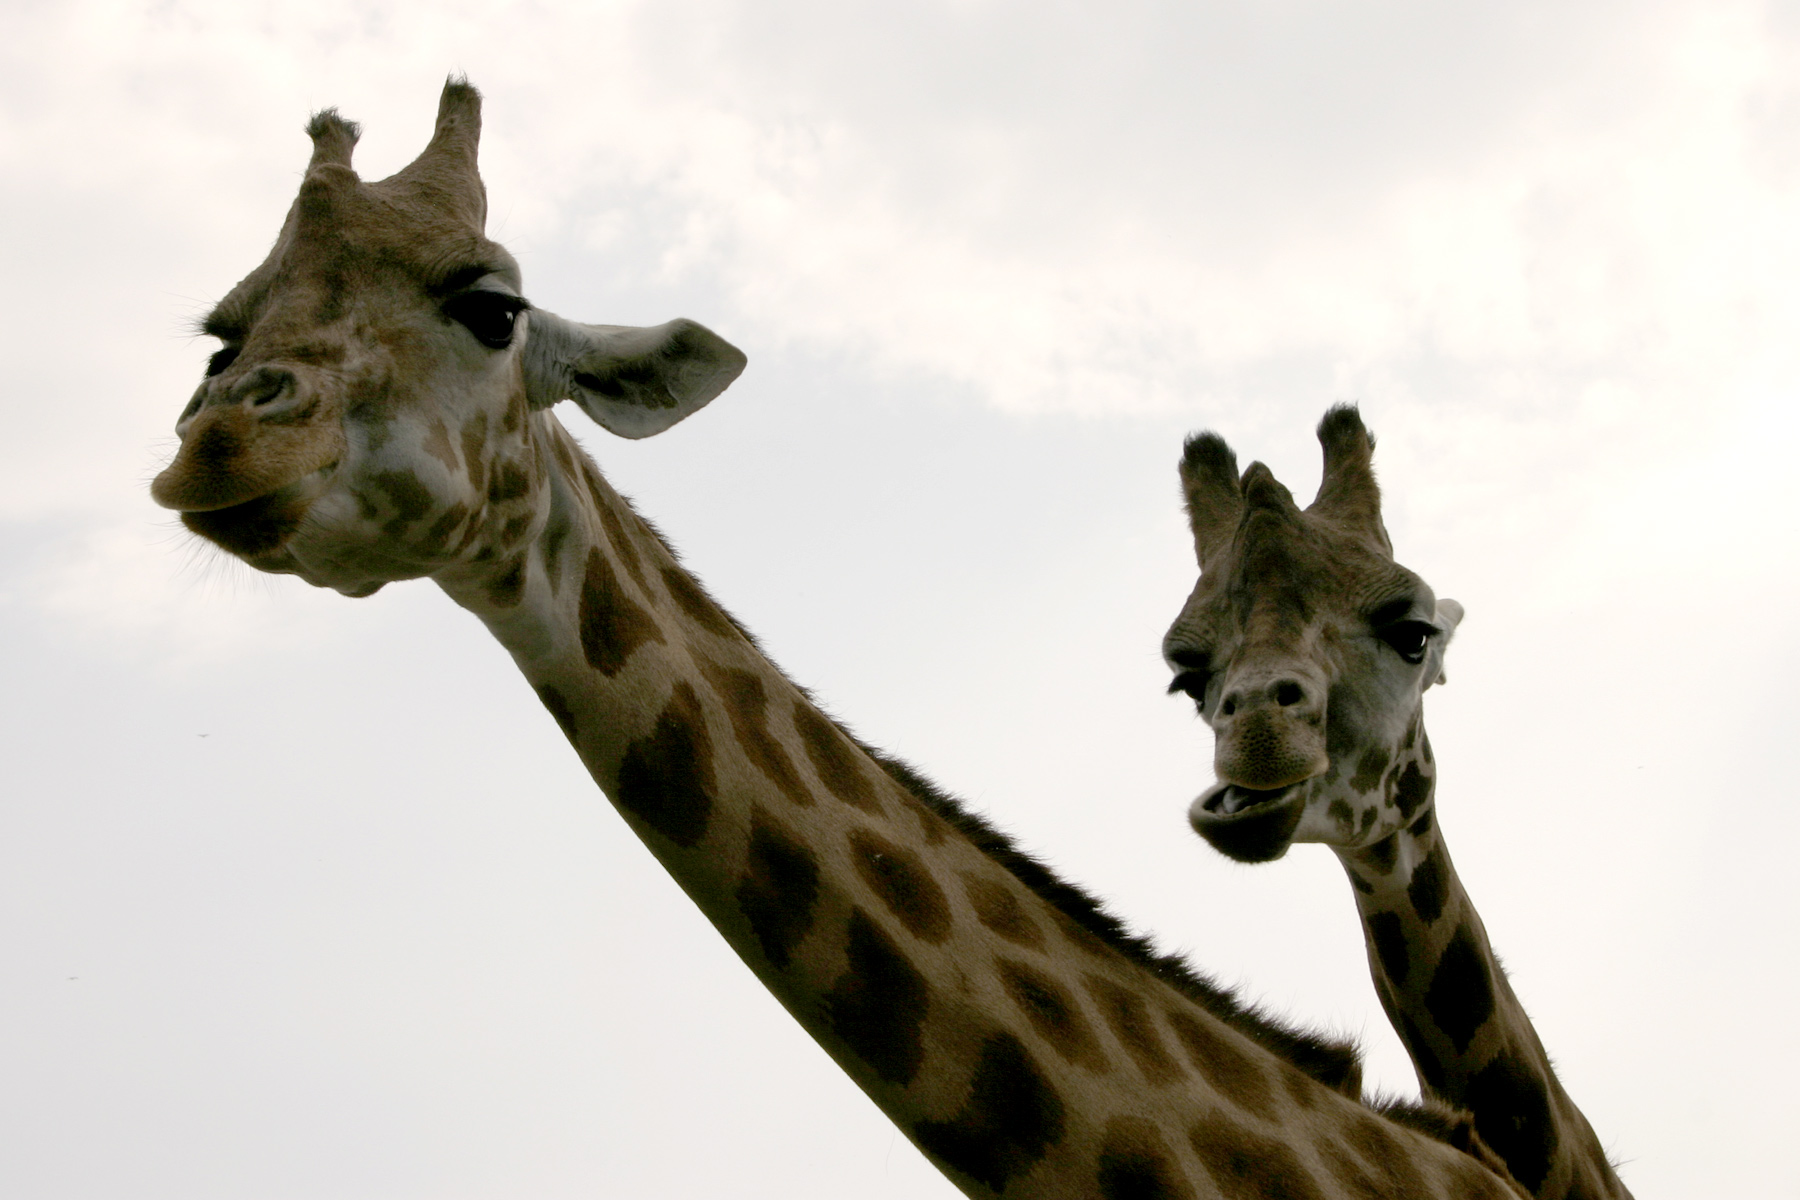 A pair of giraffes photo